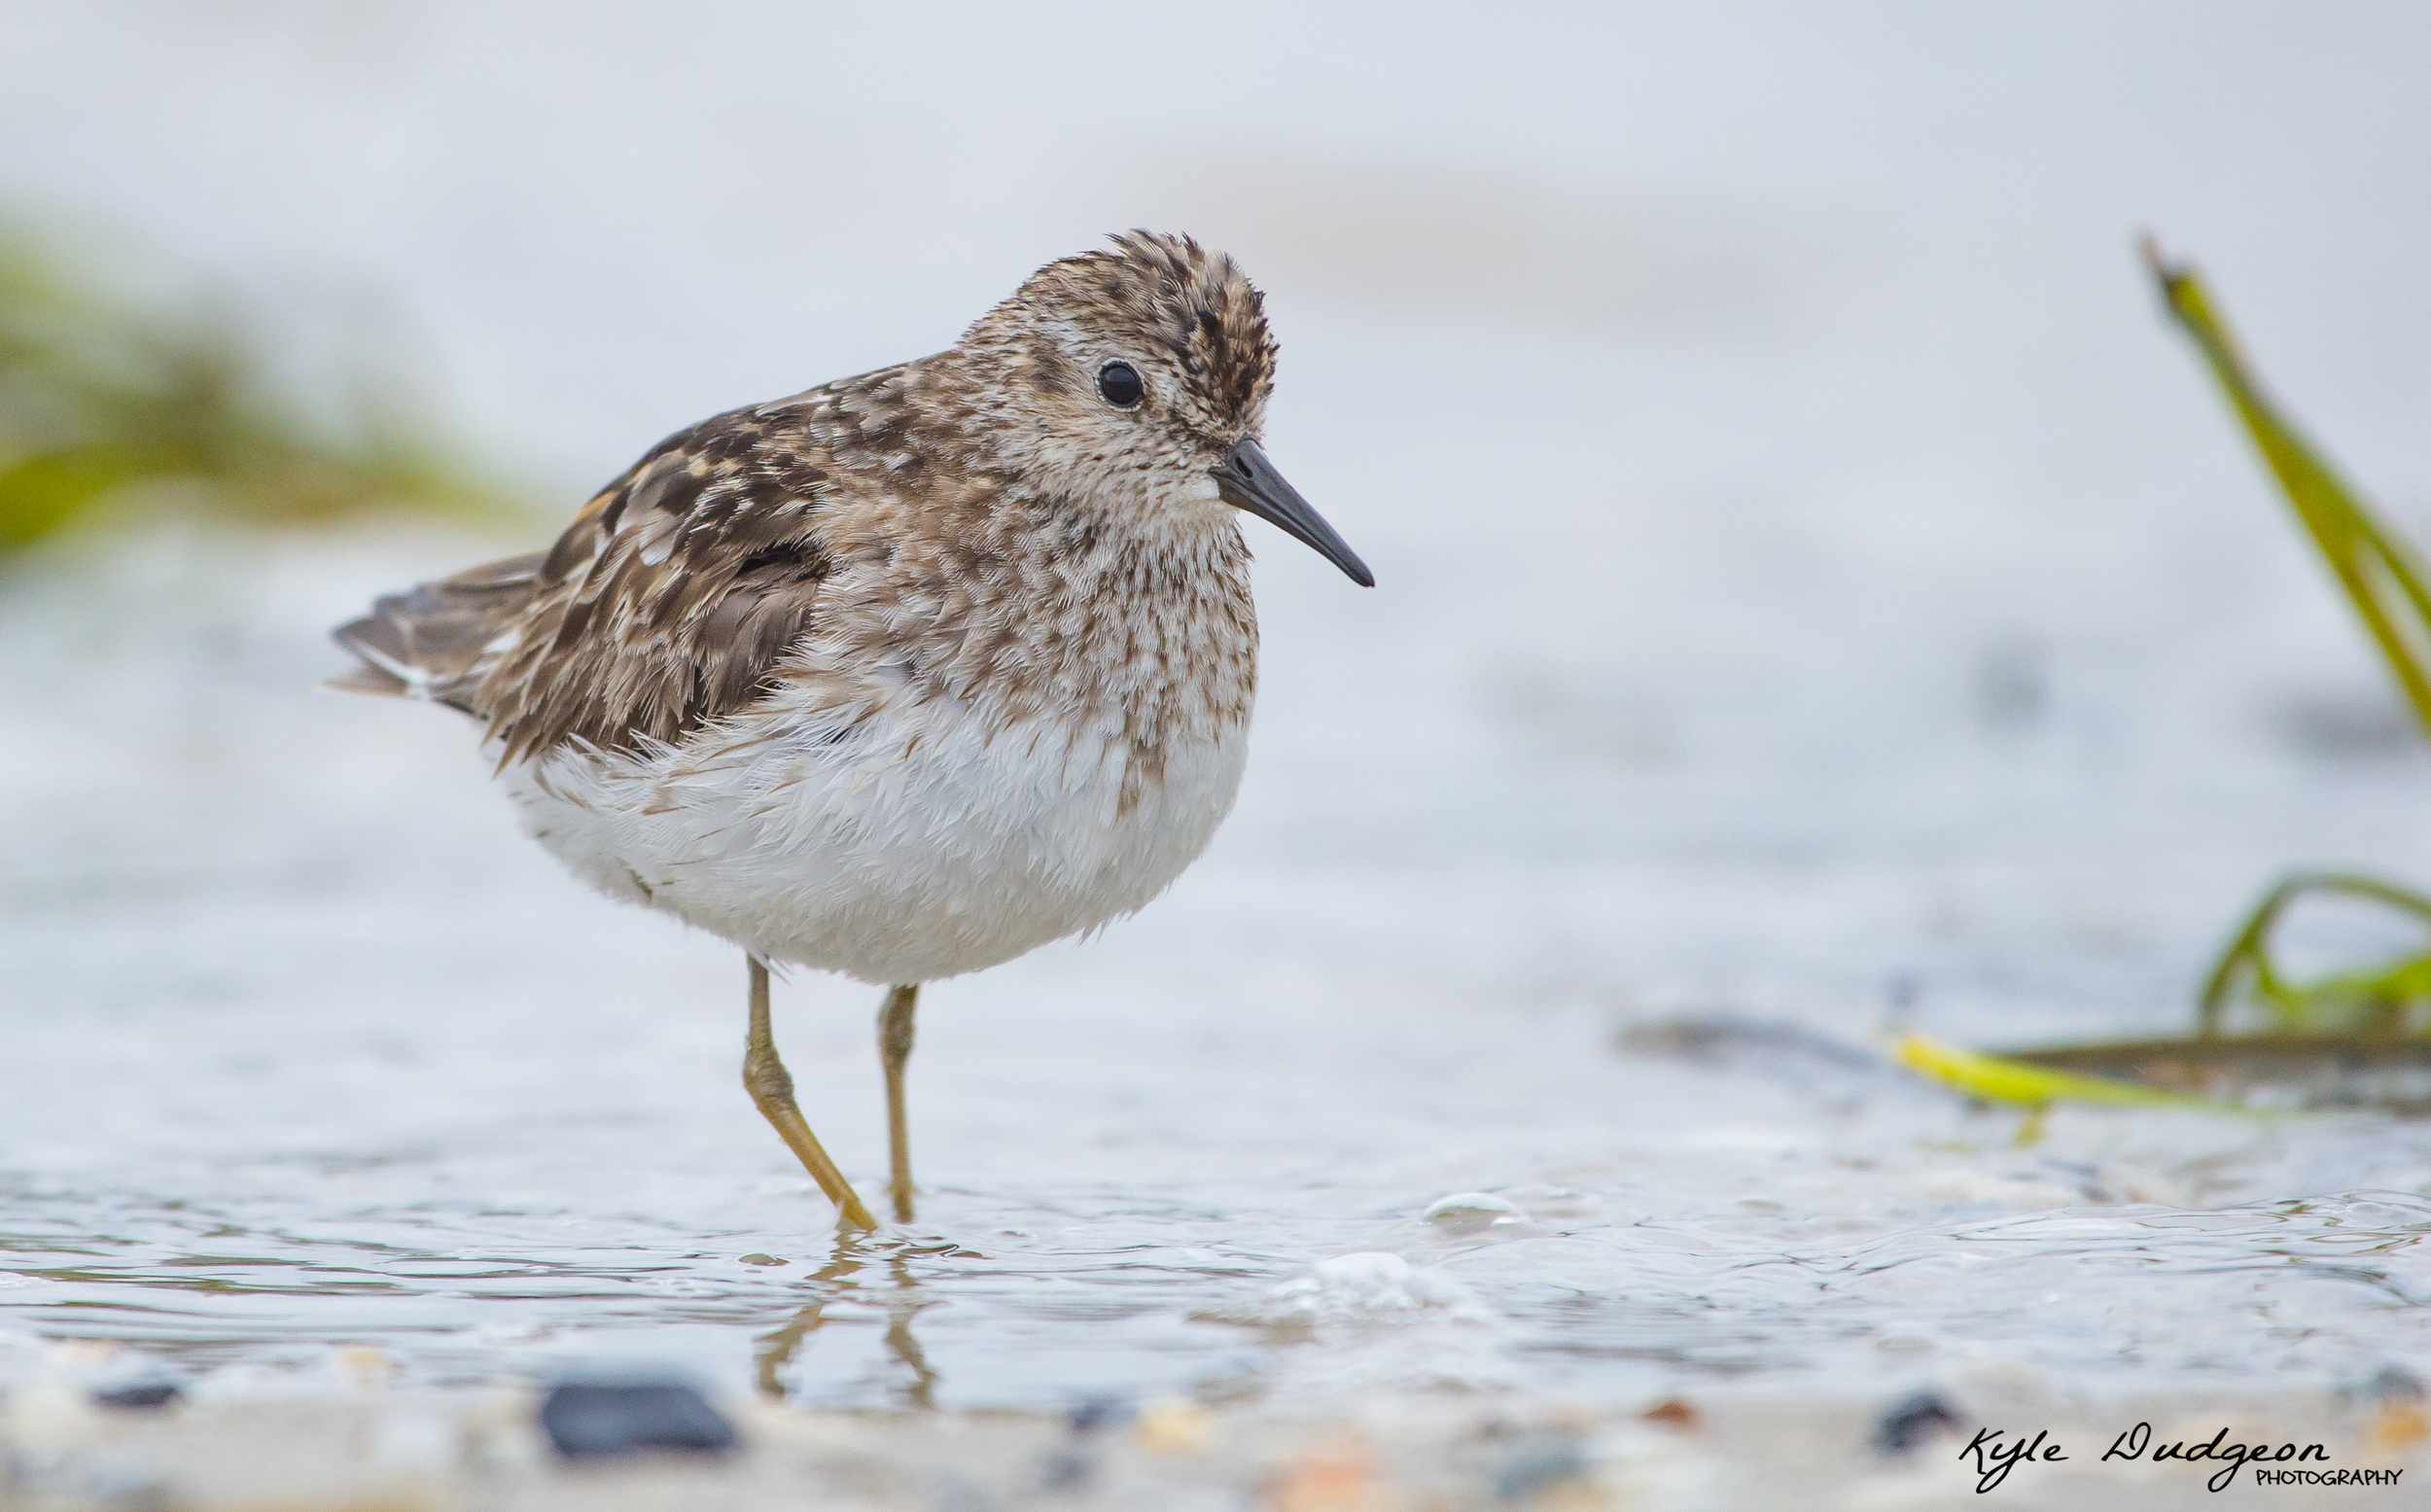 I photographed this least sandpiper in Barnegat Light as well. This bird was super cooperative, just walking right up to me as I laid in the sand. 8/3/16.